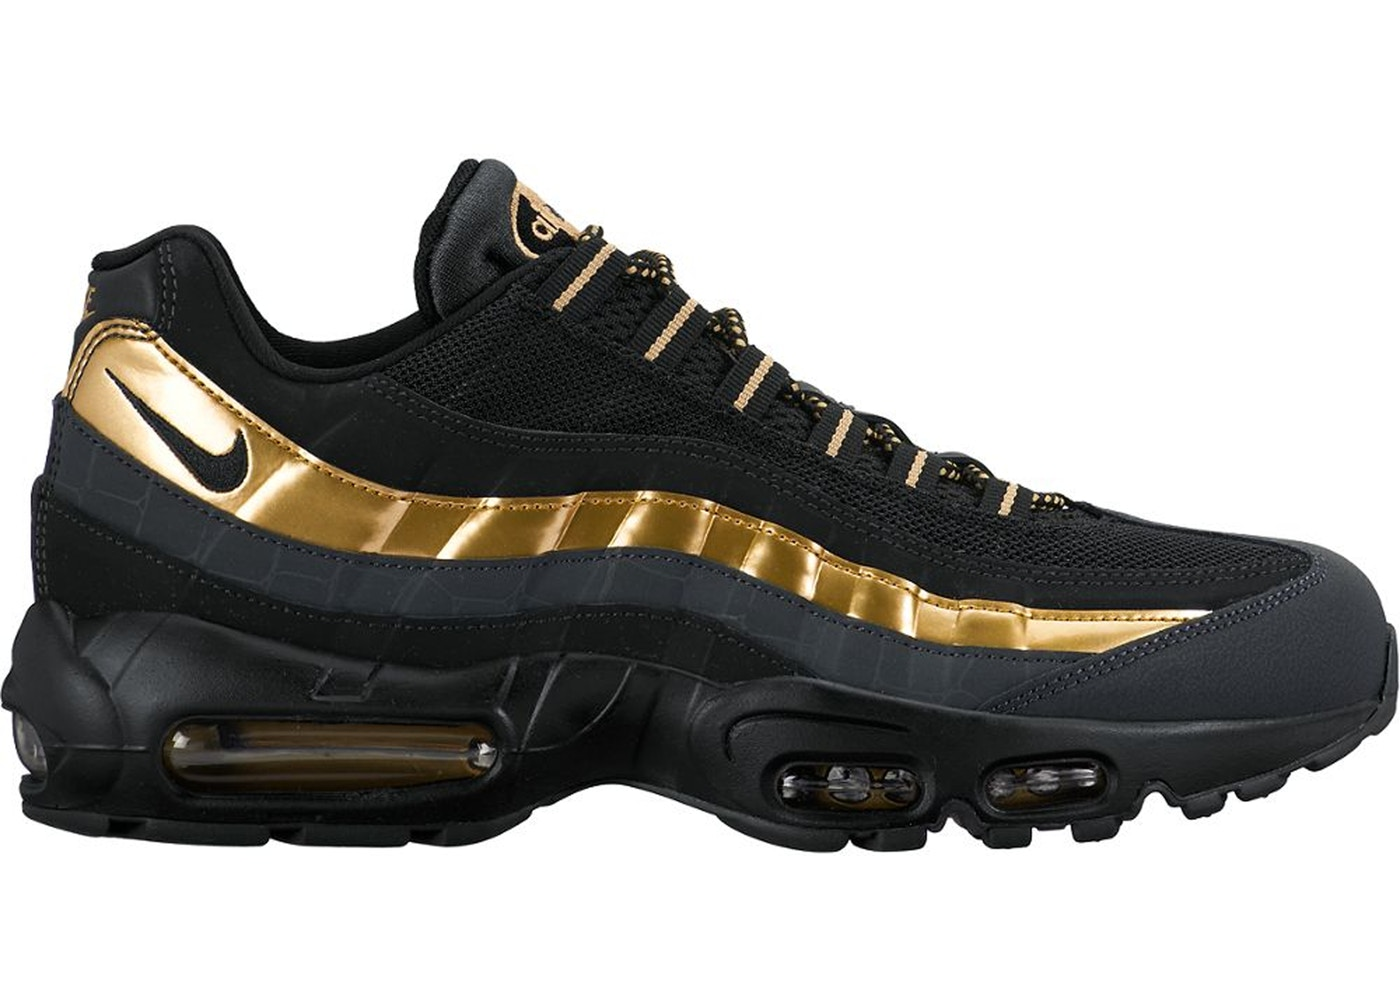 sneakers for cheap b0785 f6e87 Nike Air Max 95 Black/Metallic Gold/ Anthracite-38416007 - True Looks